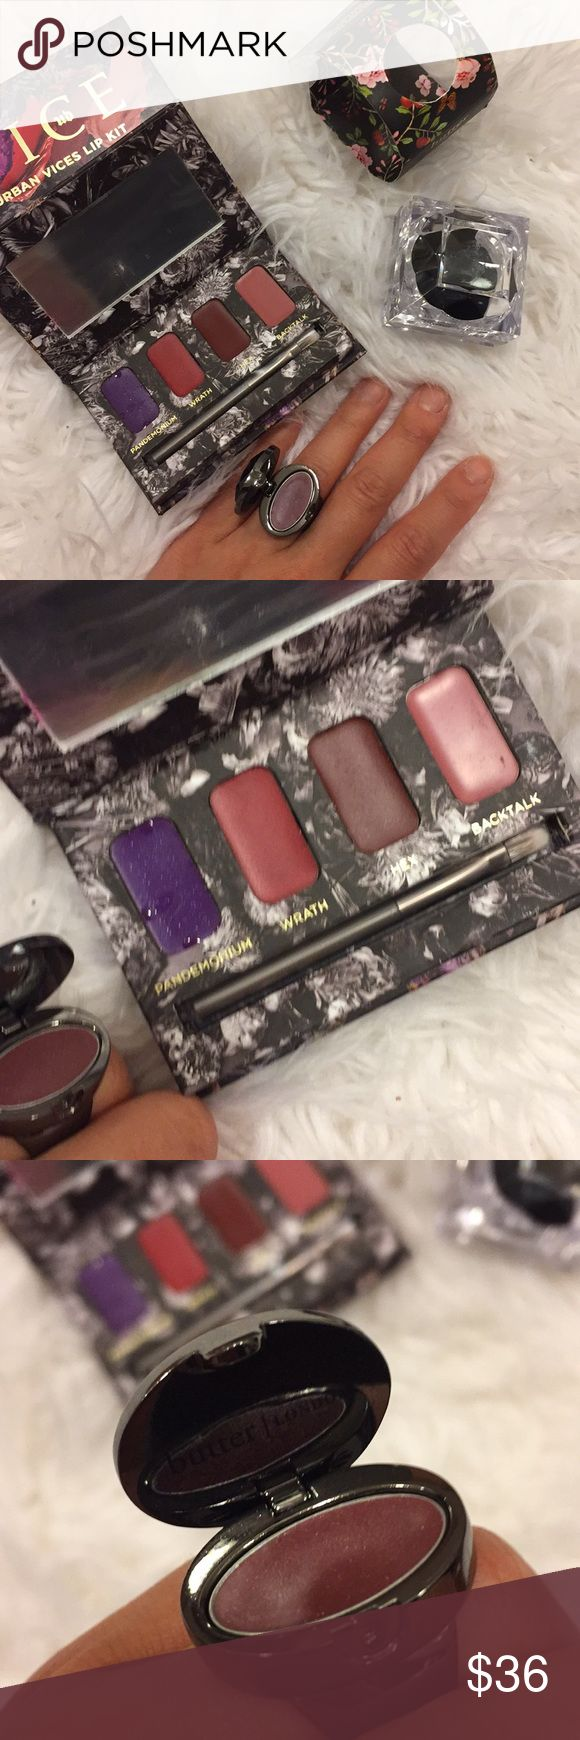 Urban decay, butter London lip bundle Both are new. Never used in perfect new condition. Urban decay vice lipstick palette with 4 lipsticks. Butter London lip gloss ring in size 7. Comes with ring box. No trades Urban Decay Makeup Lipstick